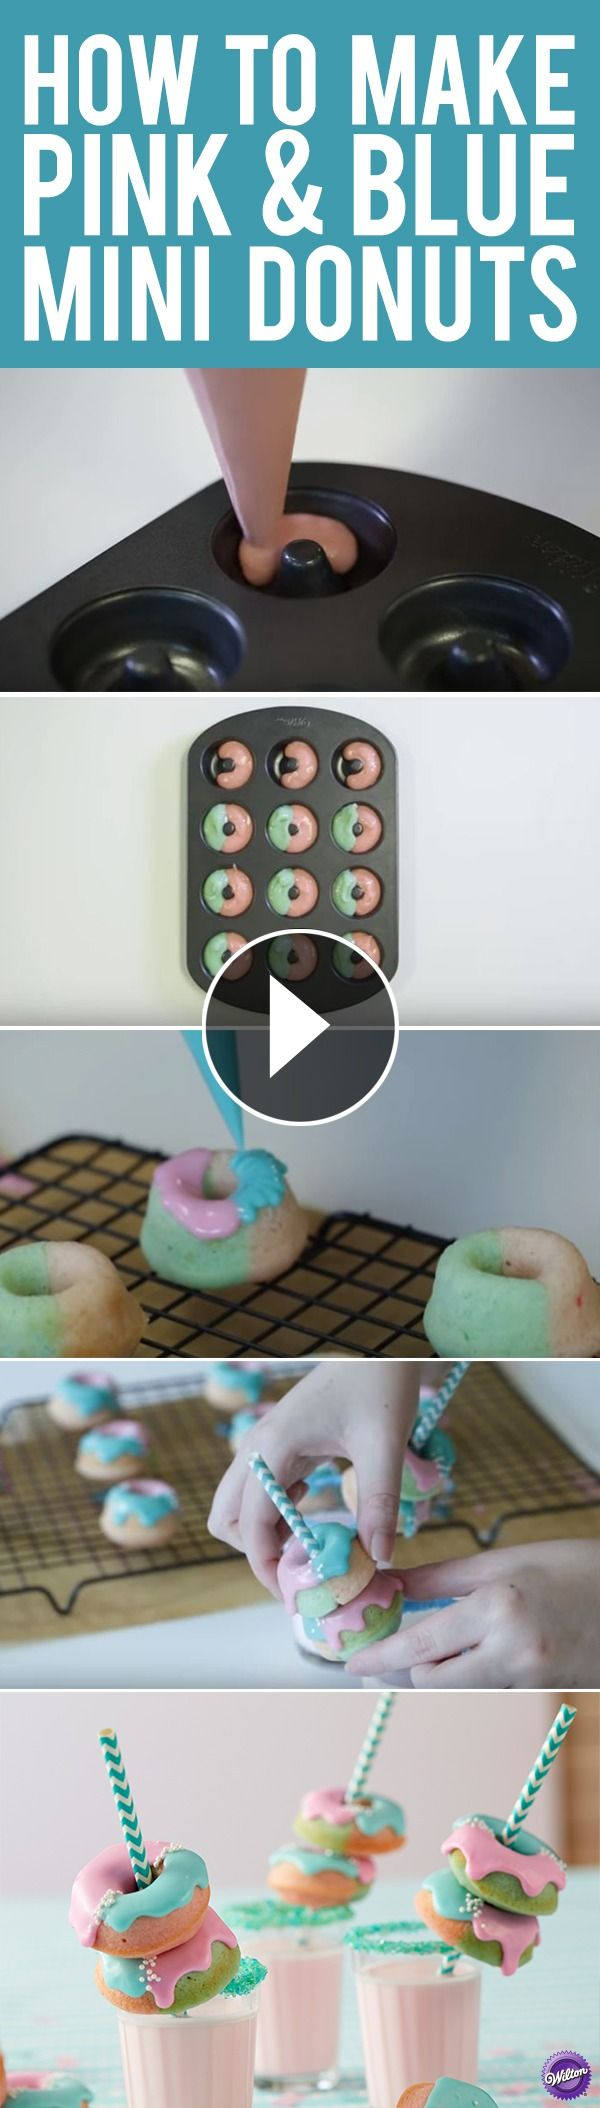 Click to watch how easy it is to make these cute Pink & Blue Mini Donuts! They are perfect for gender-neutral baby shower parties or as fun treats for family and friends. They are easy to make and customize to any colors you want.